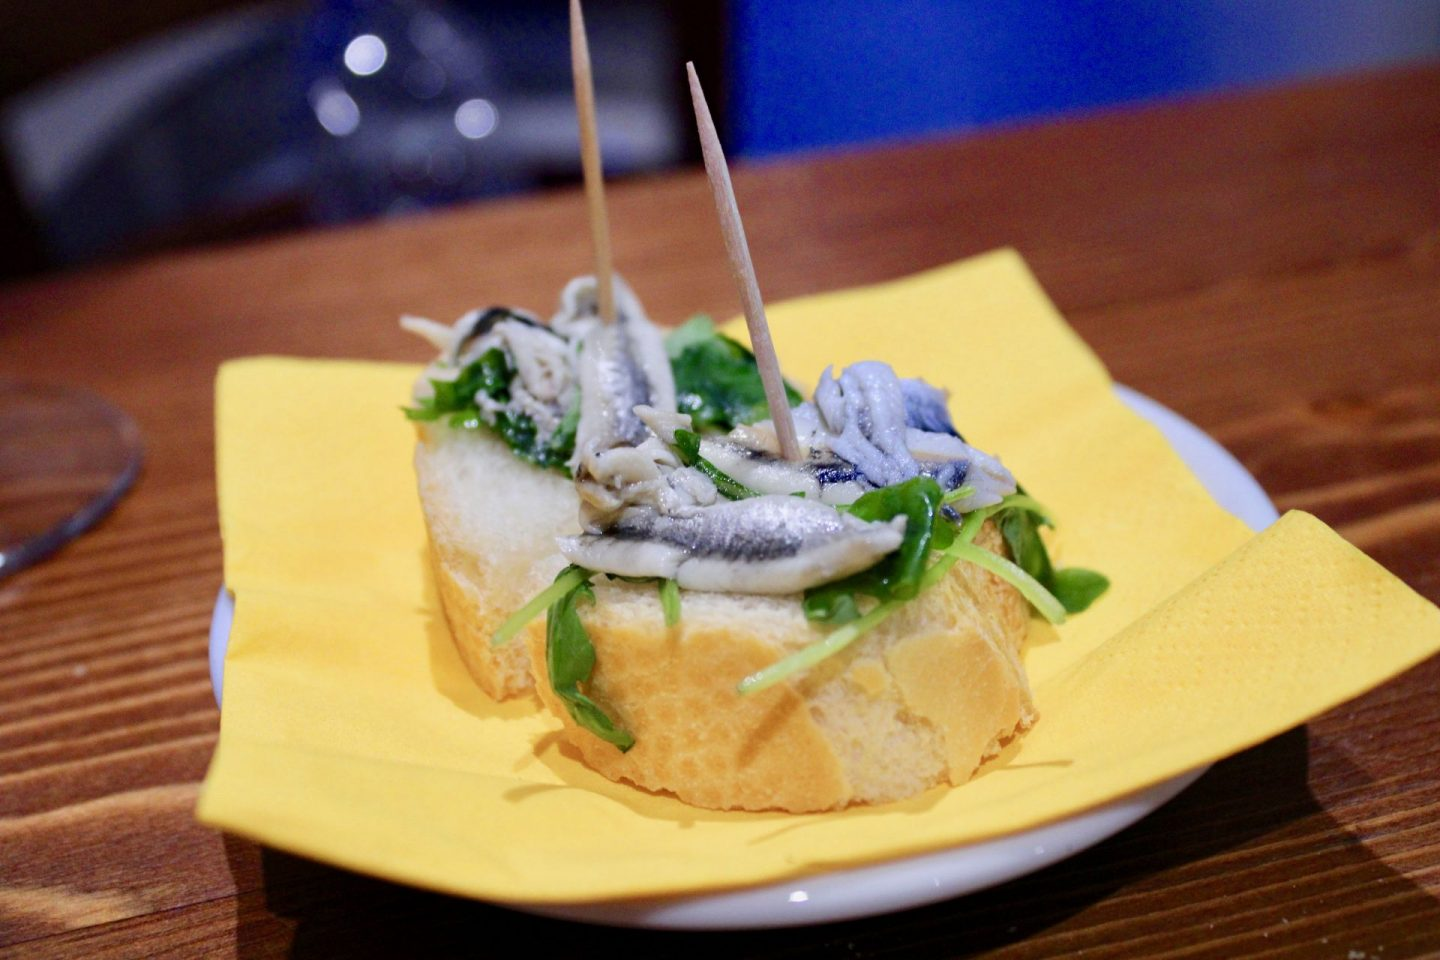 bruschetta topped with pickled herring